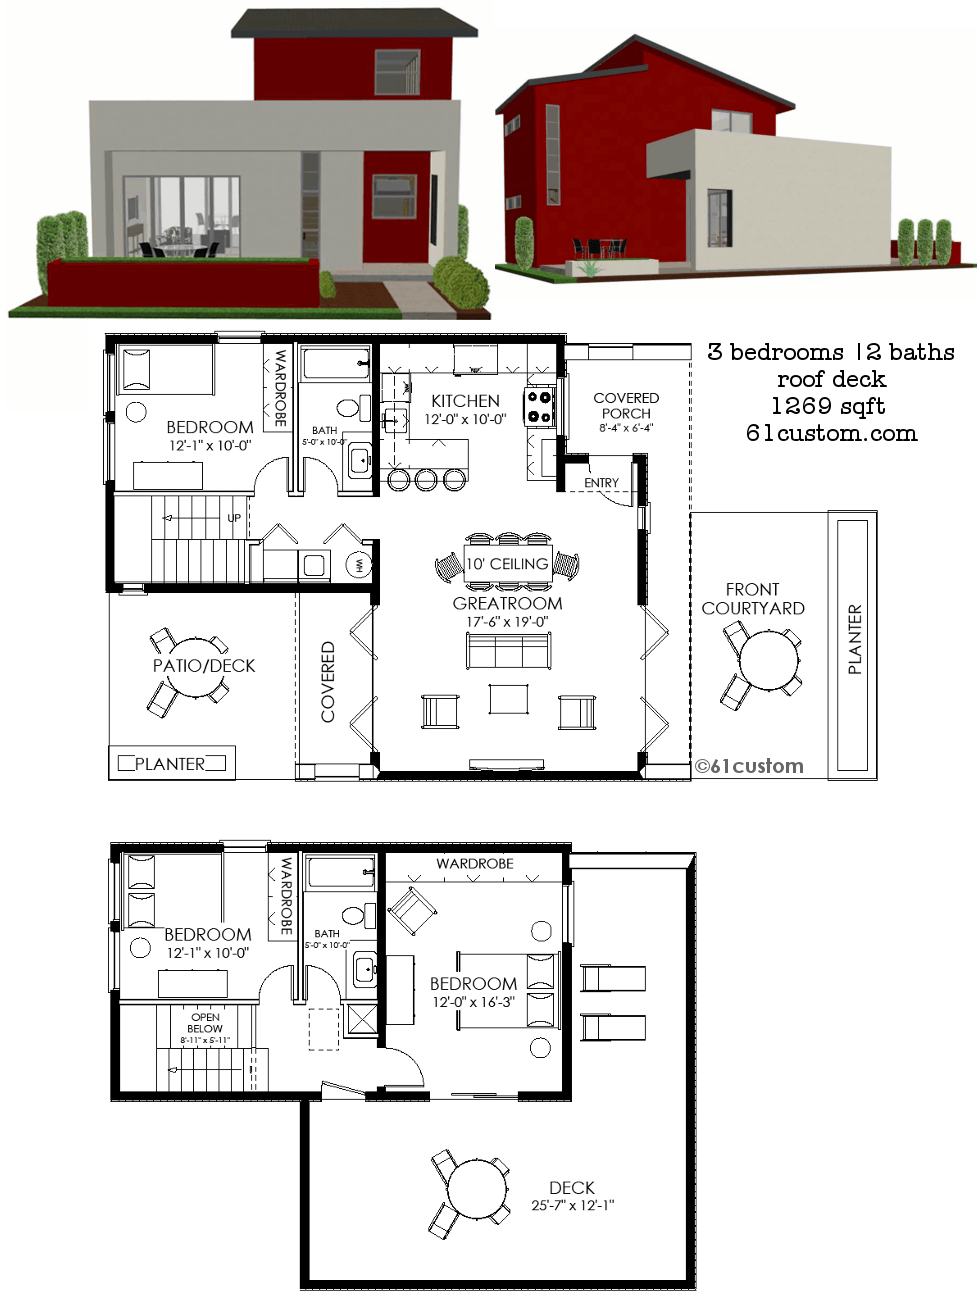 Contemporary small house plan 61custom contemporary Floor plan of a modern house